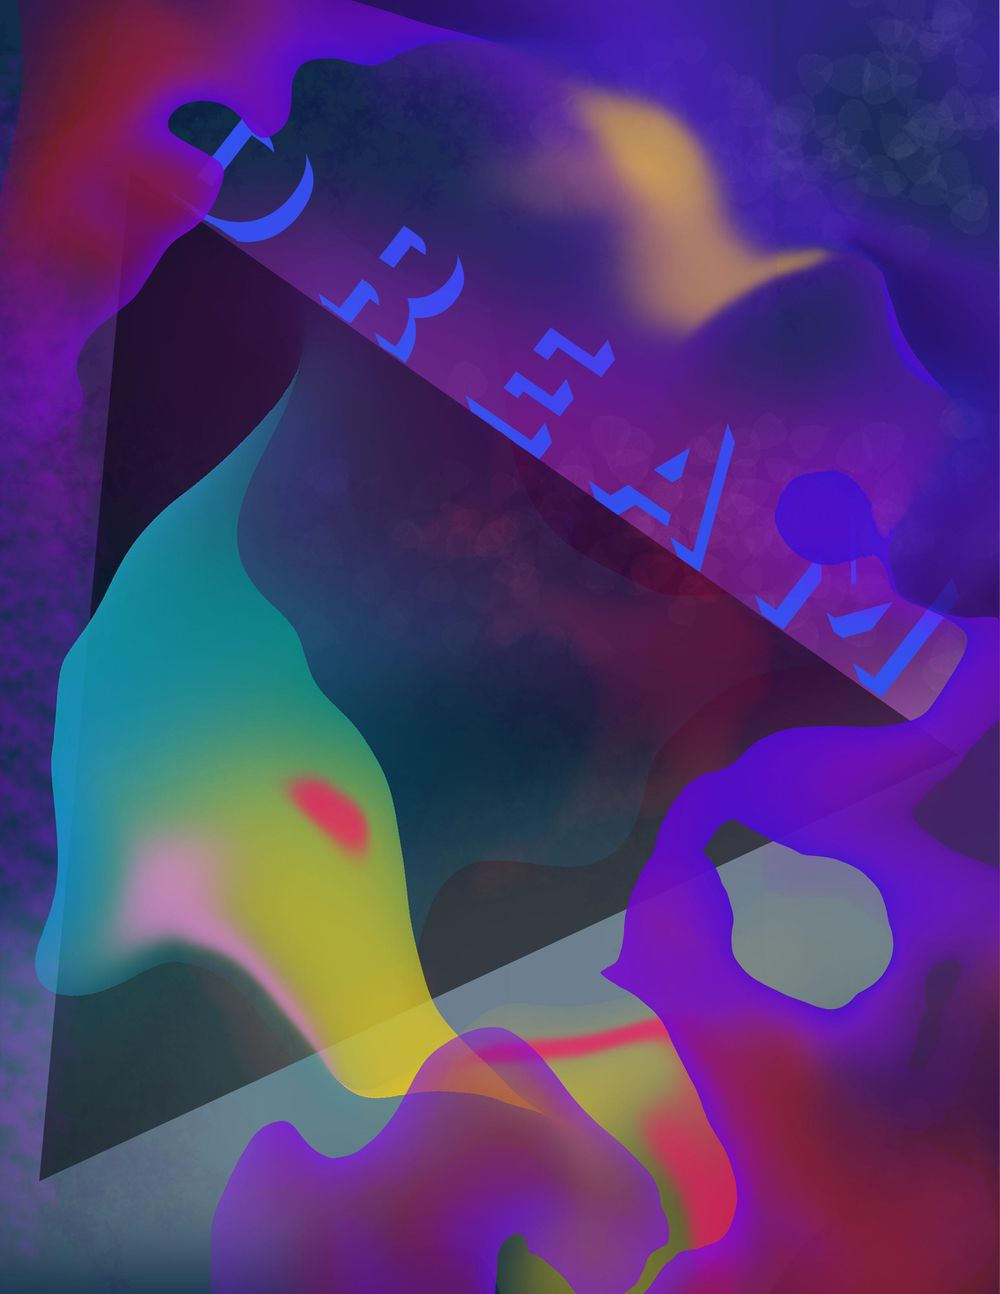 Dreamy gradients - image 2 - student project